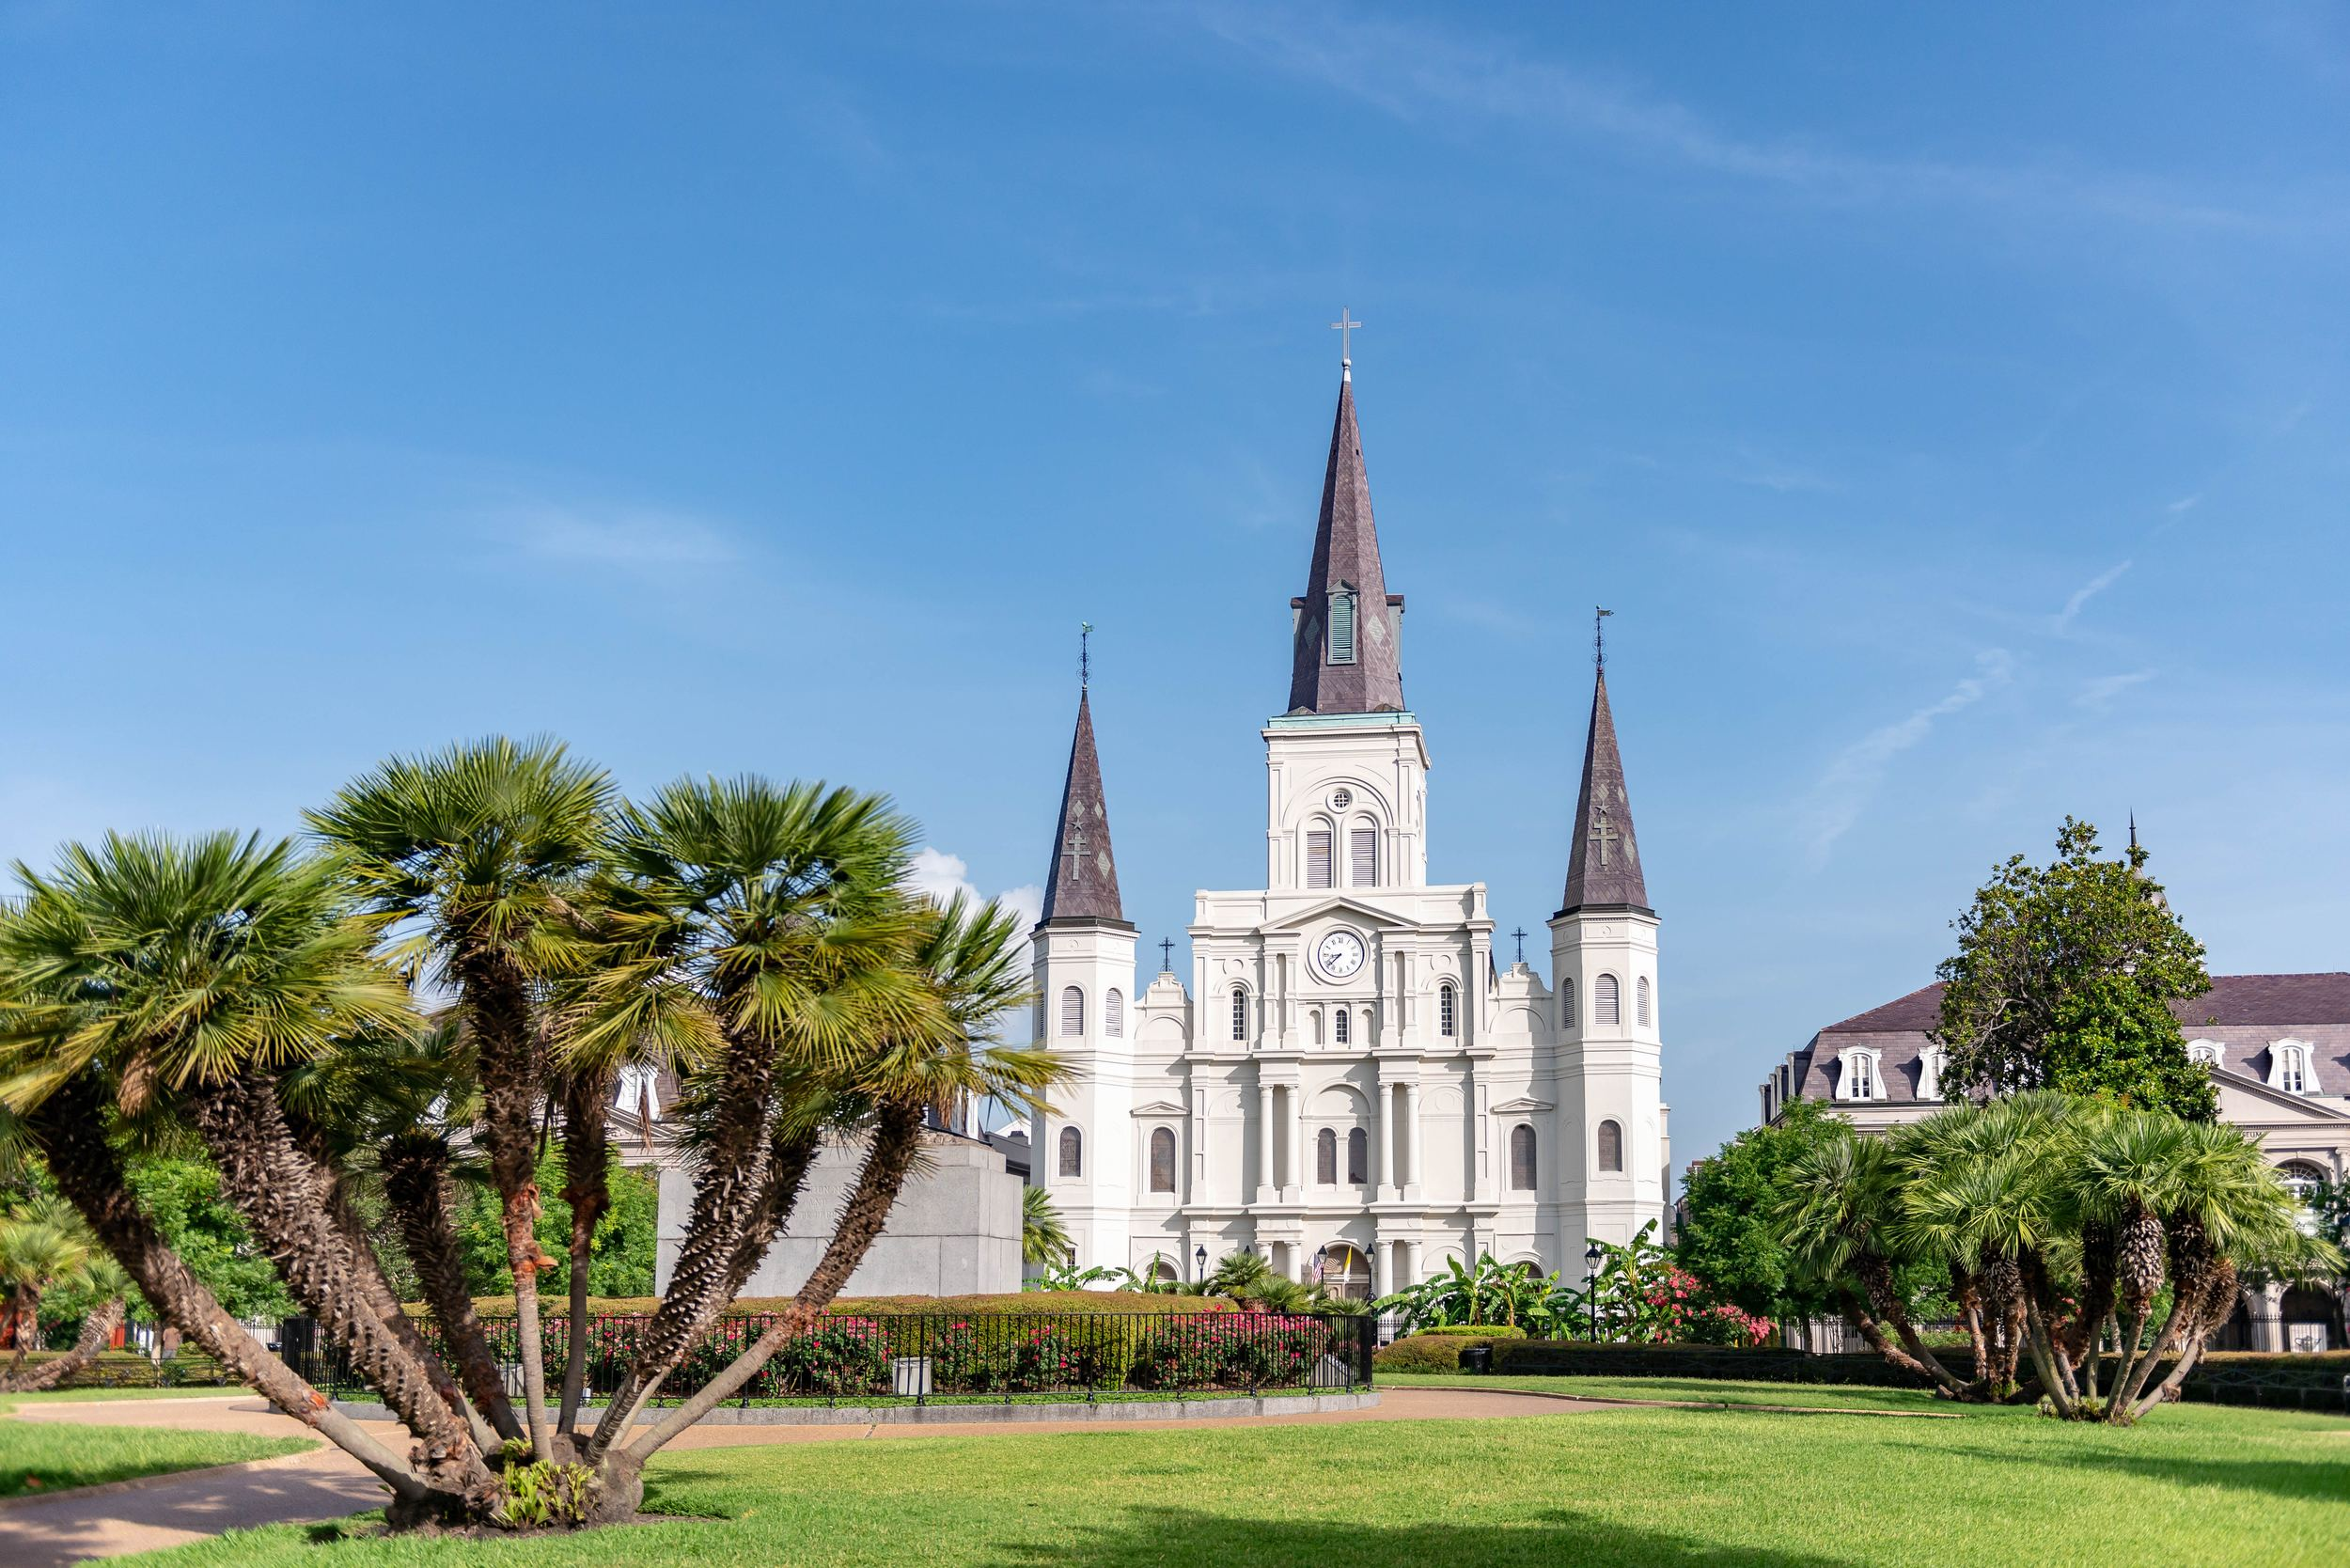 Old Catholic cathedral in New Orleans, St Louis Cathedral.